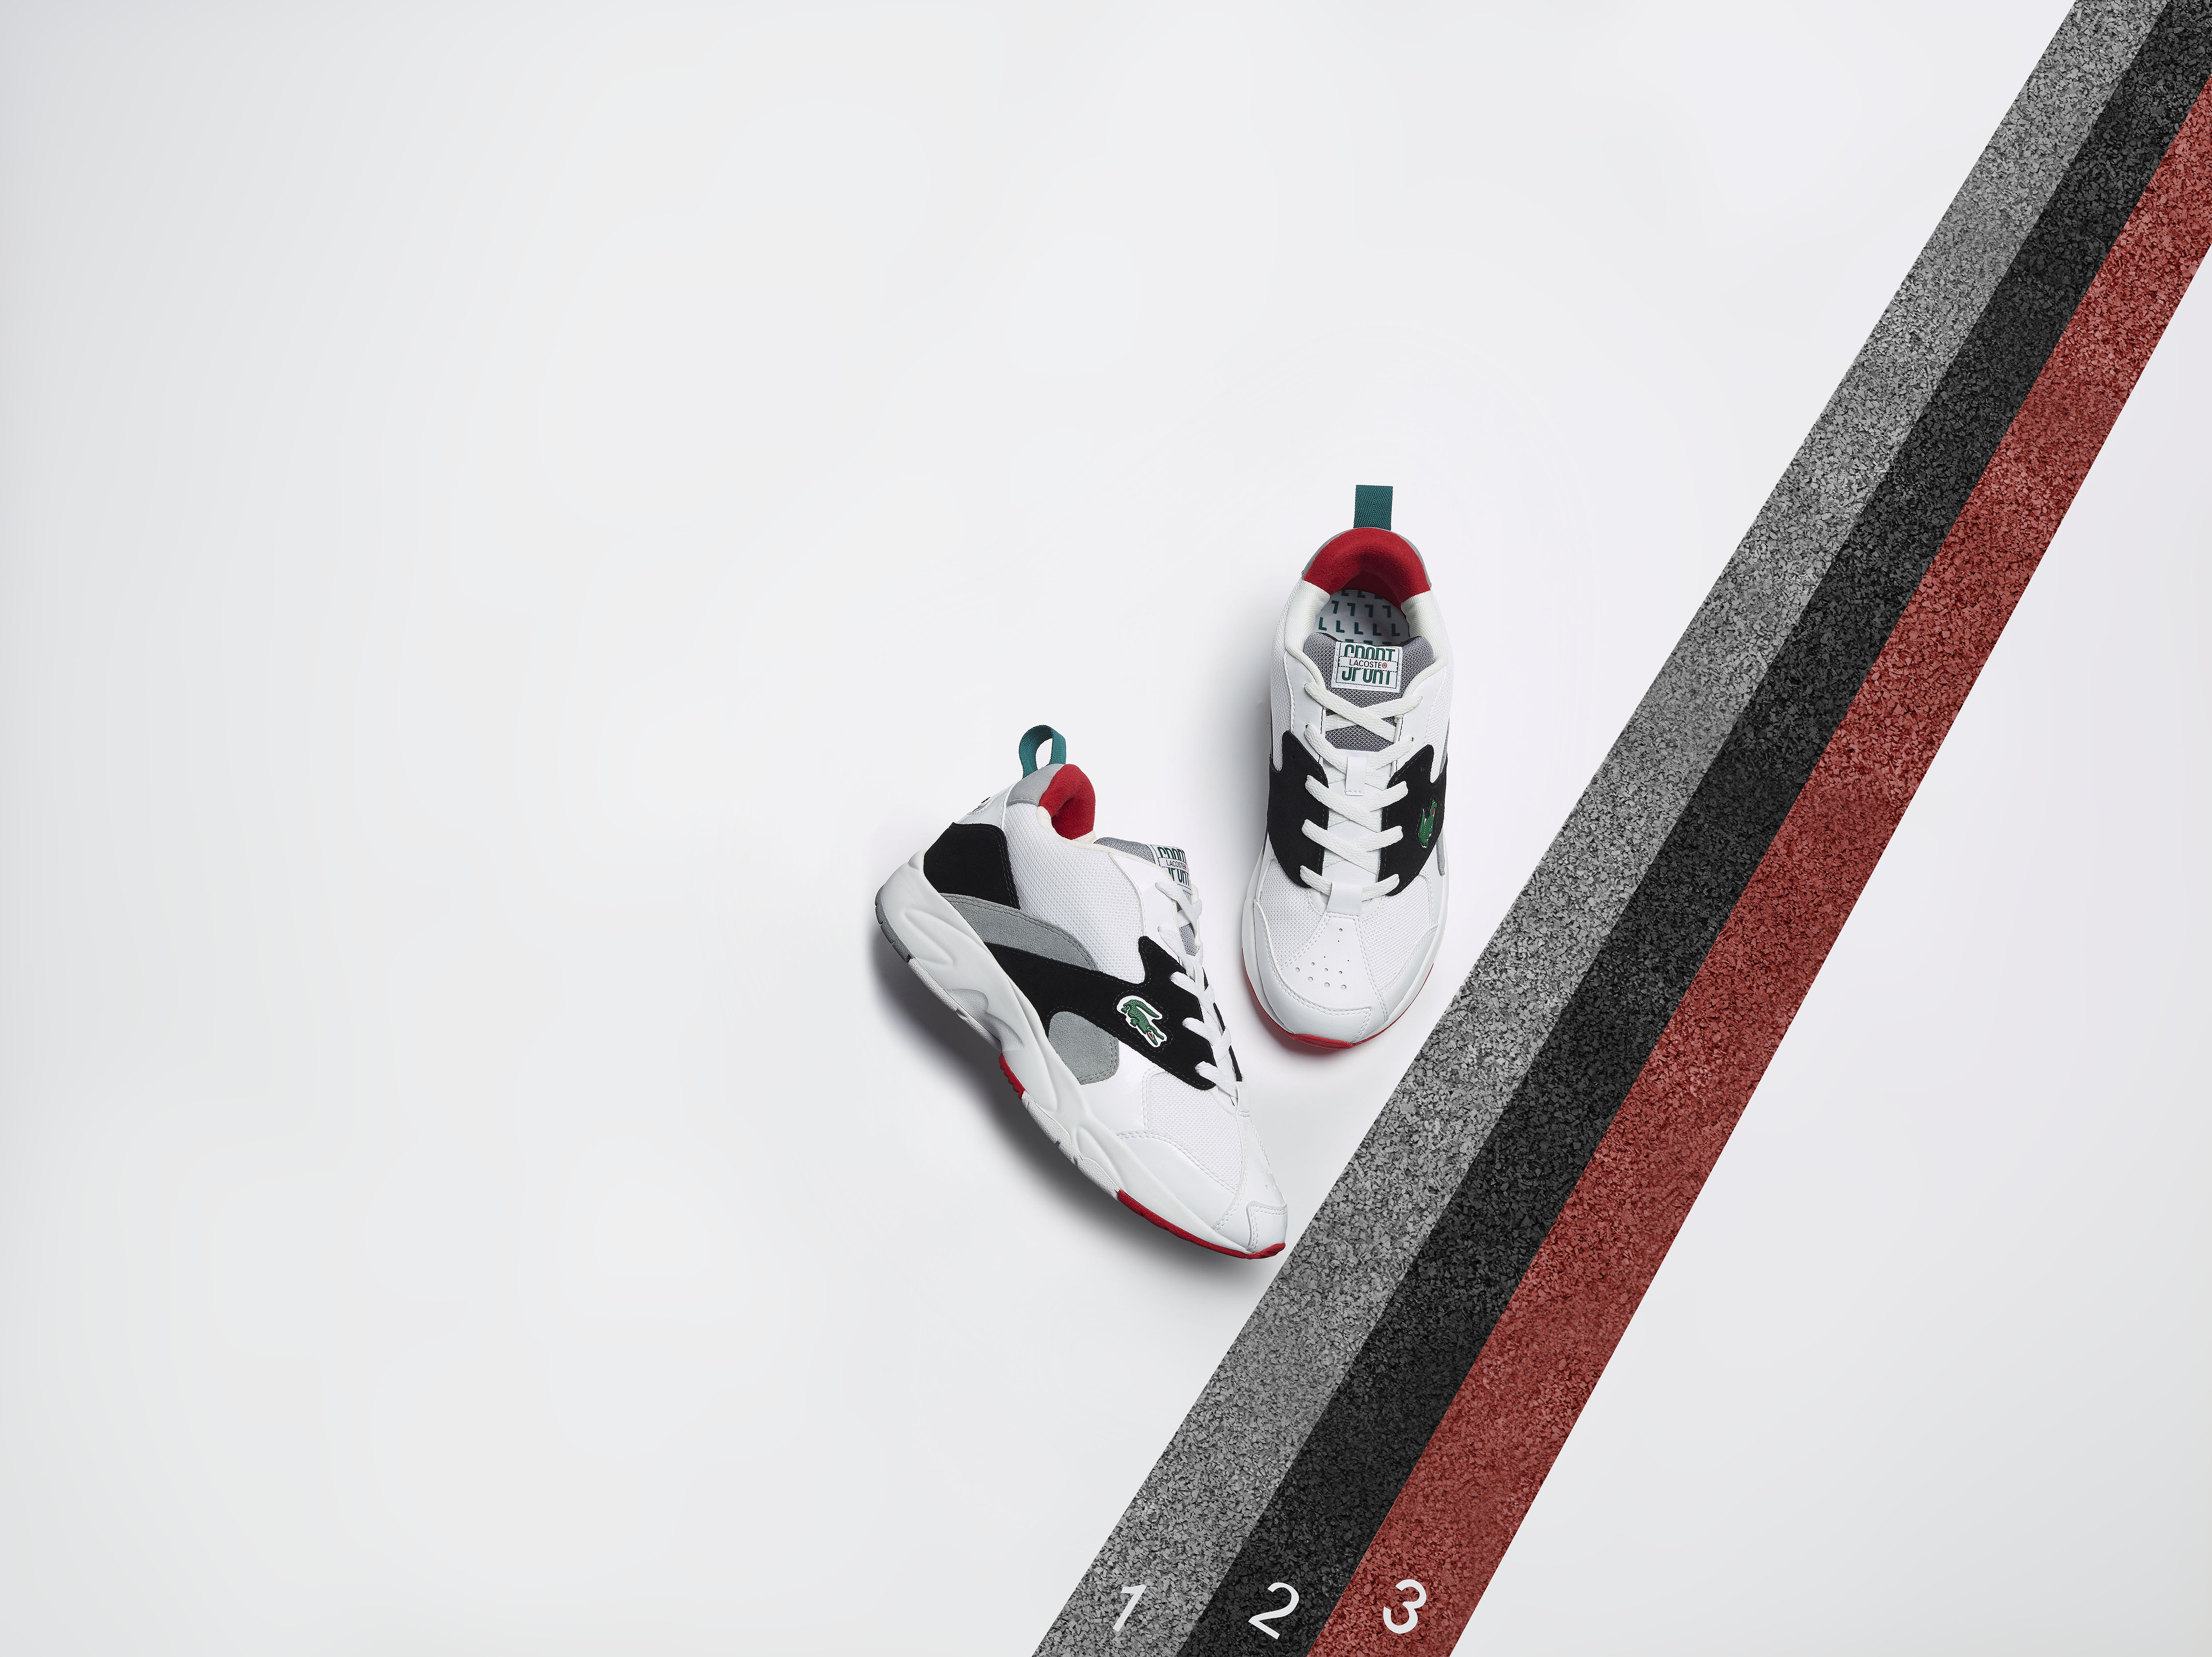 giày thể thao lacoste storm 96